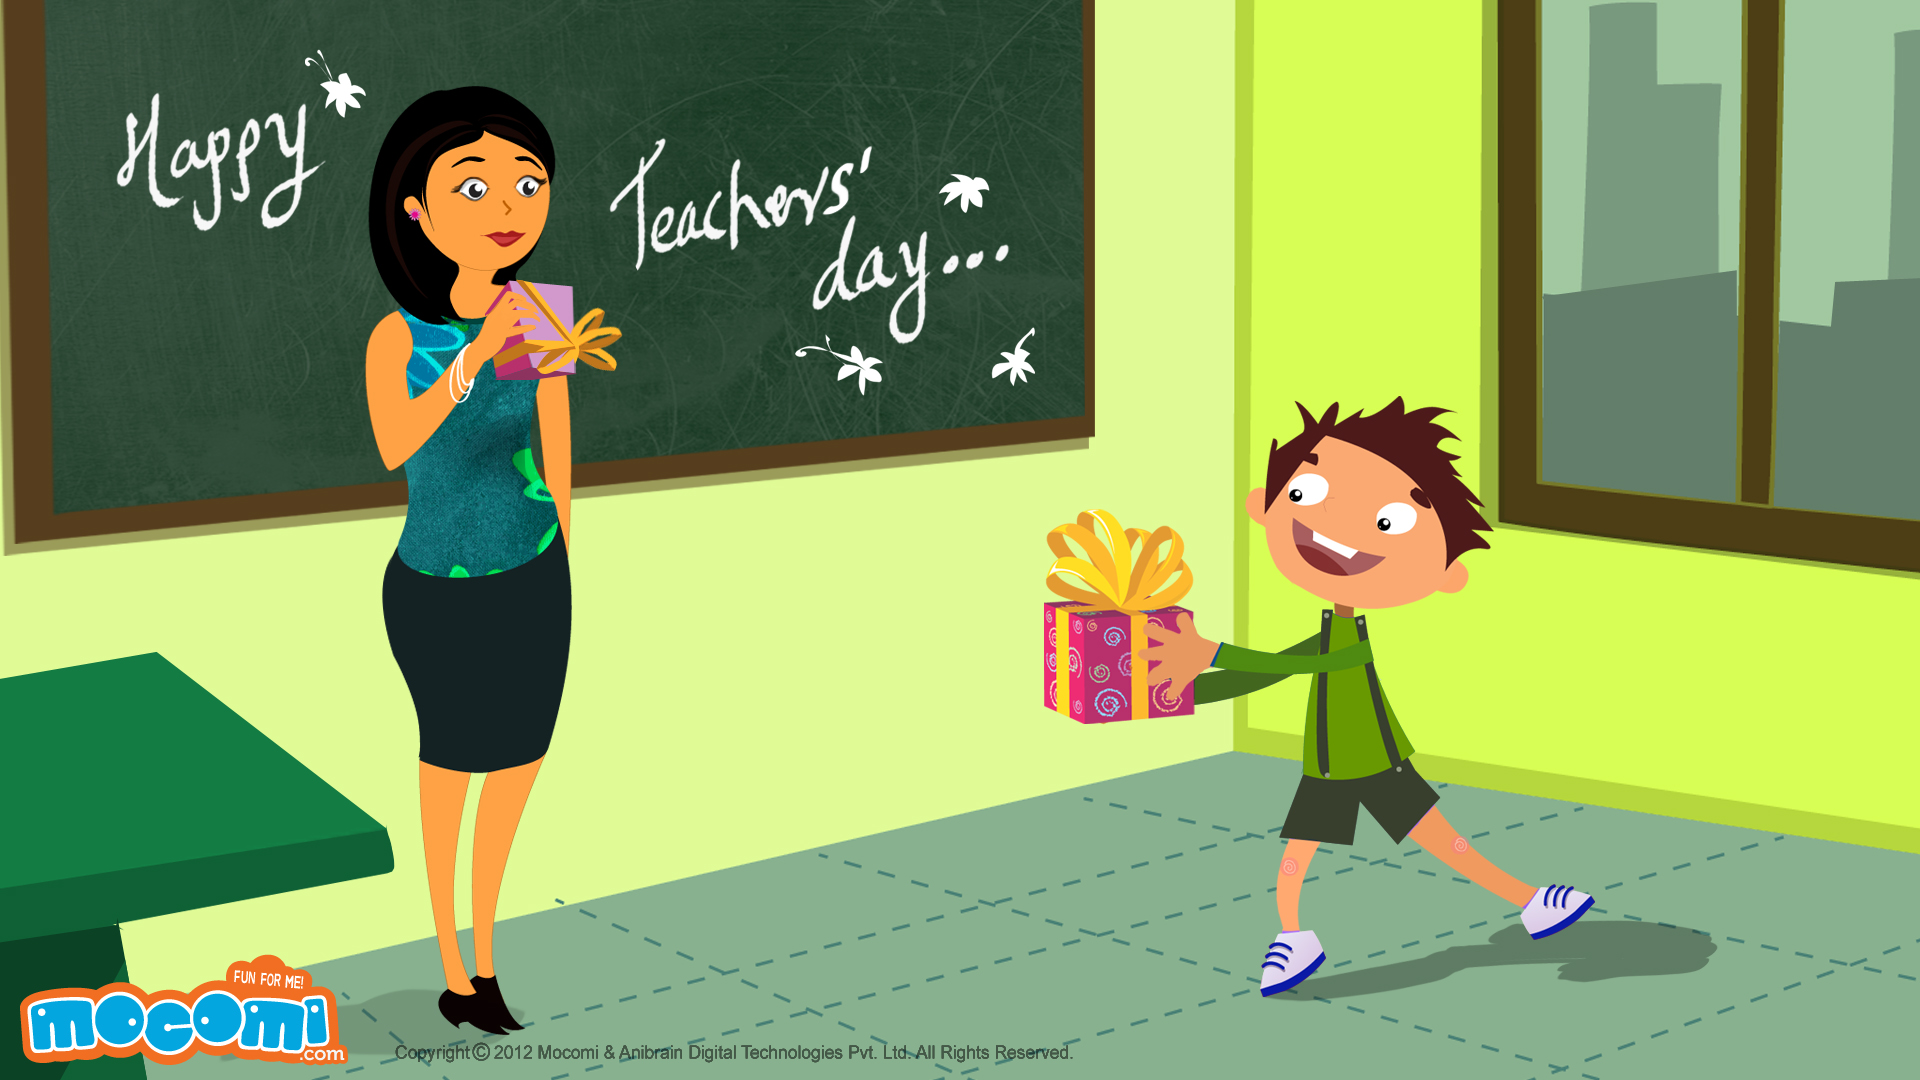 Happy Teachers' Day! 05